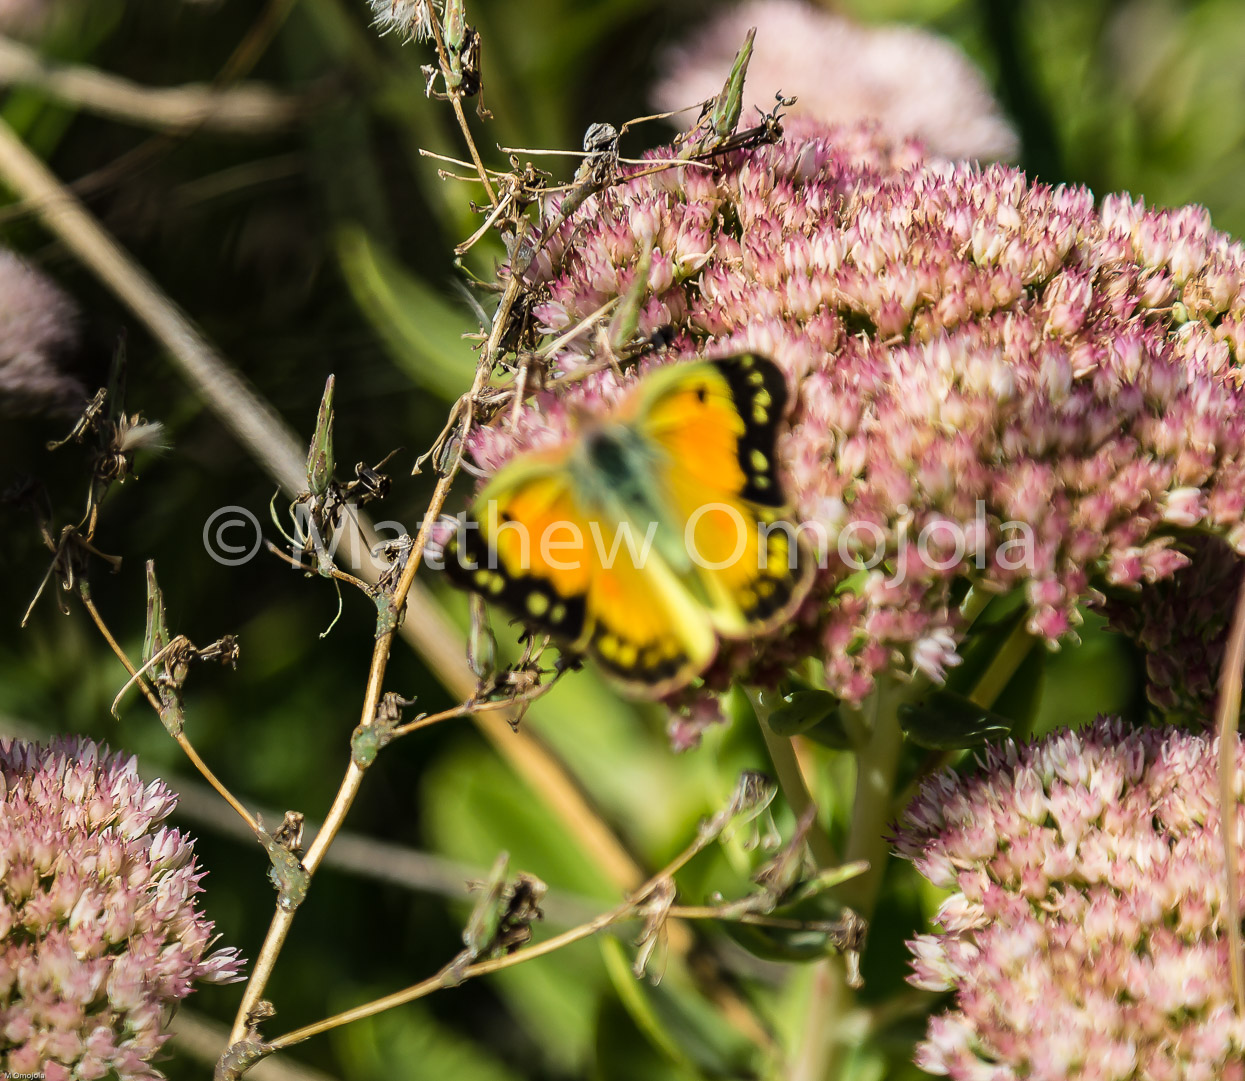 IMG_7822_Yellow_butterfly_on_sedum.jpg